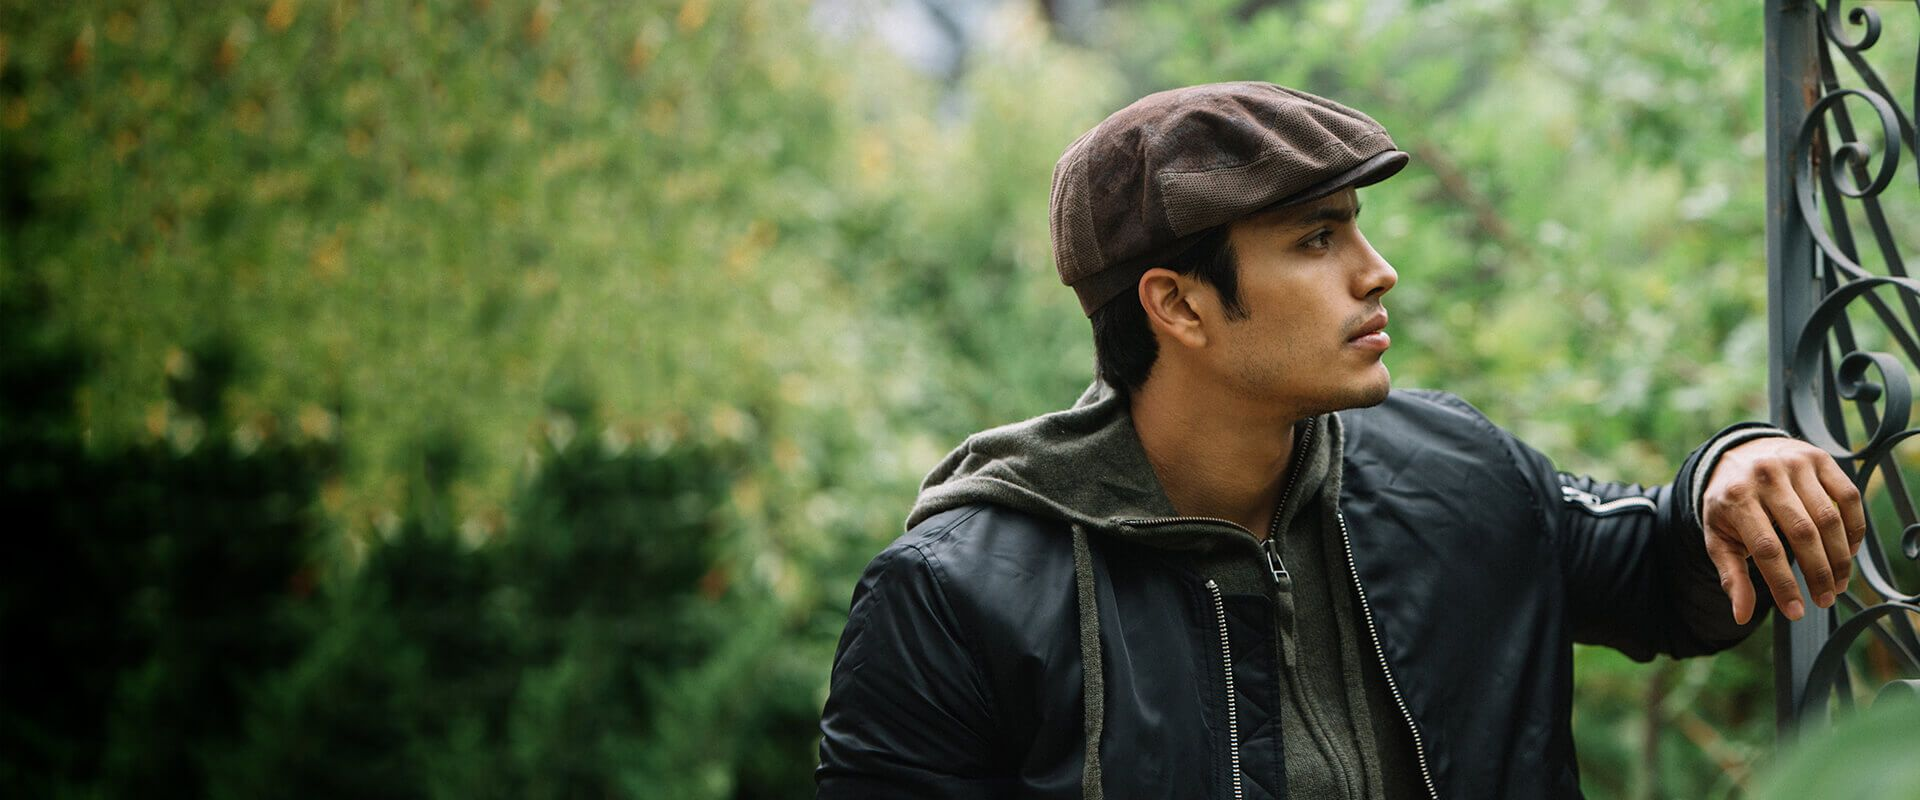 Man wearing a brown cap and a black leather jacket in the forest